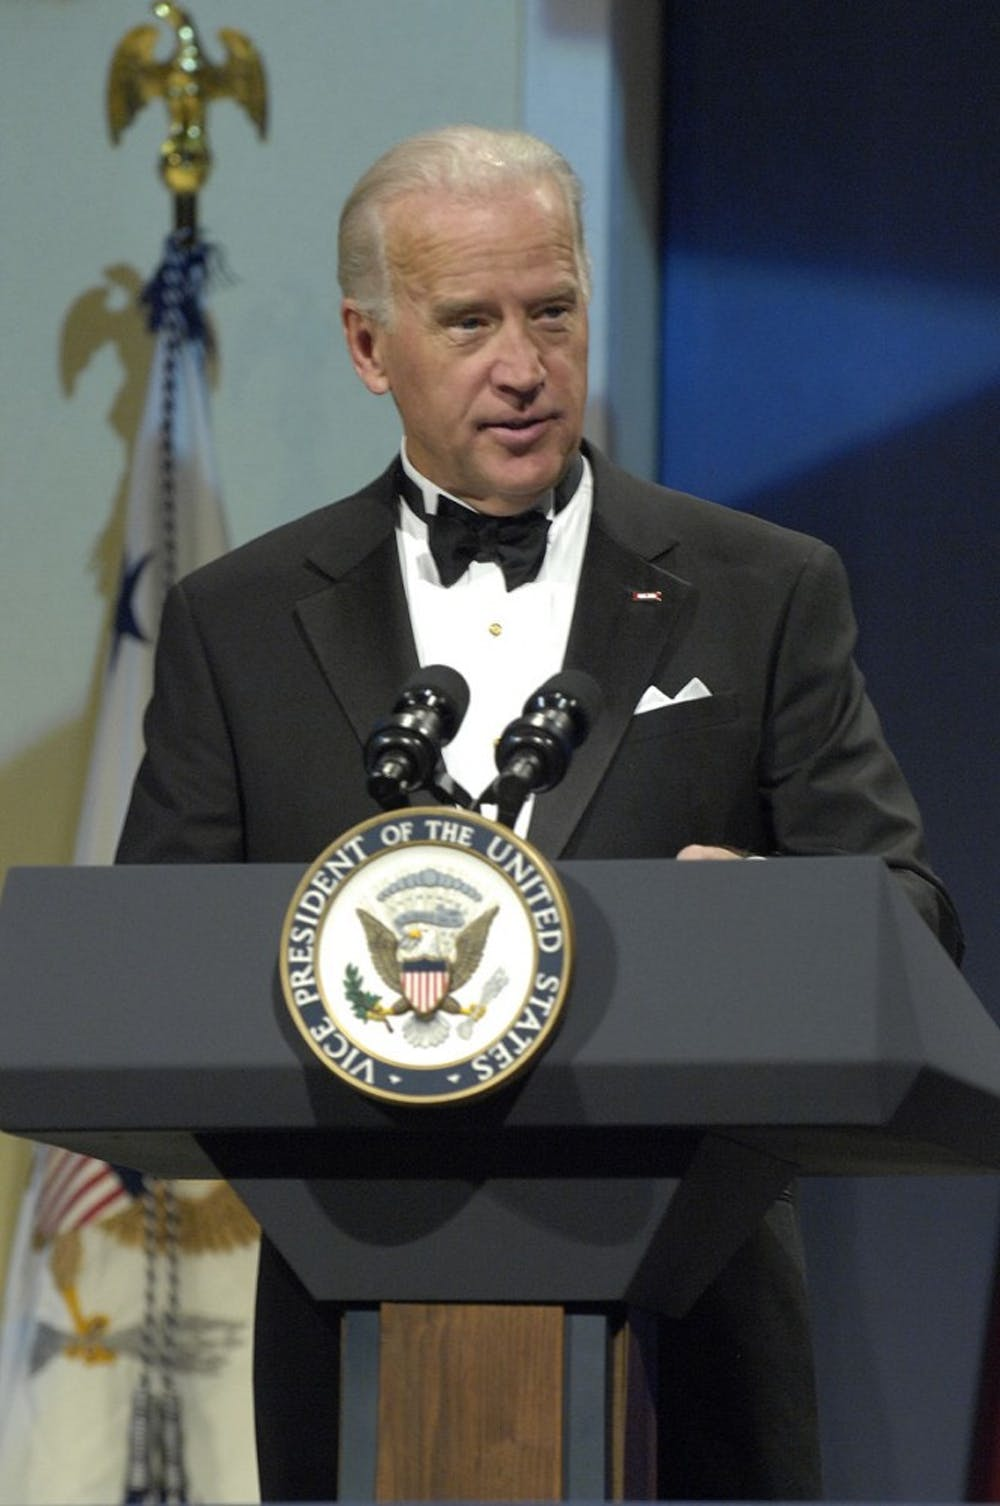 <p>Biden's ability to win this election is also simply difficult to imagine, as his potential campaign has kicked off with an apology tour.</p>